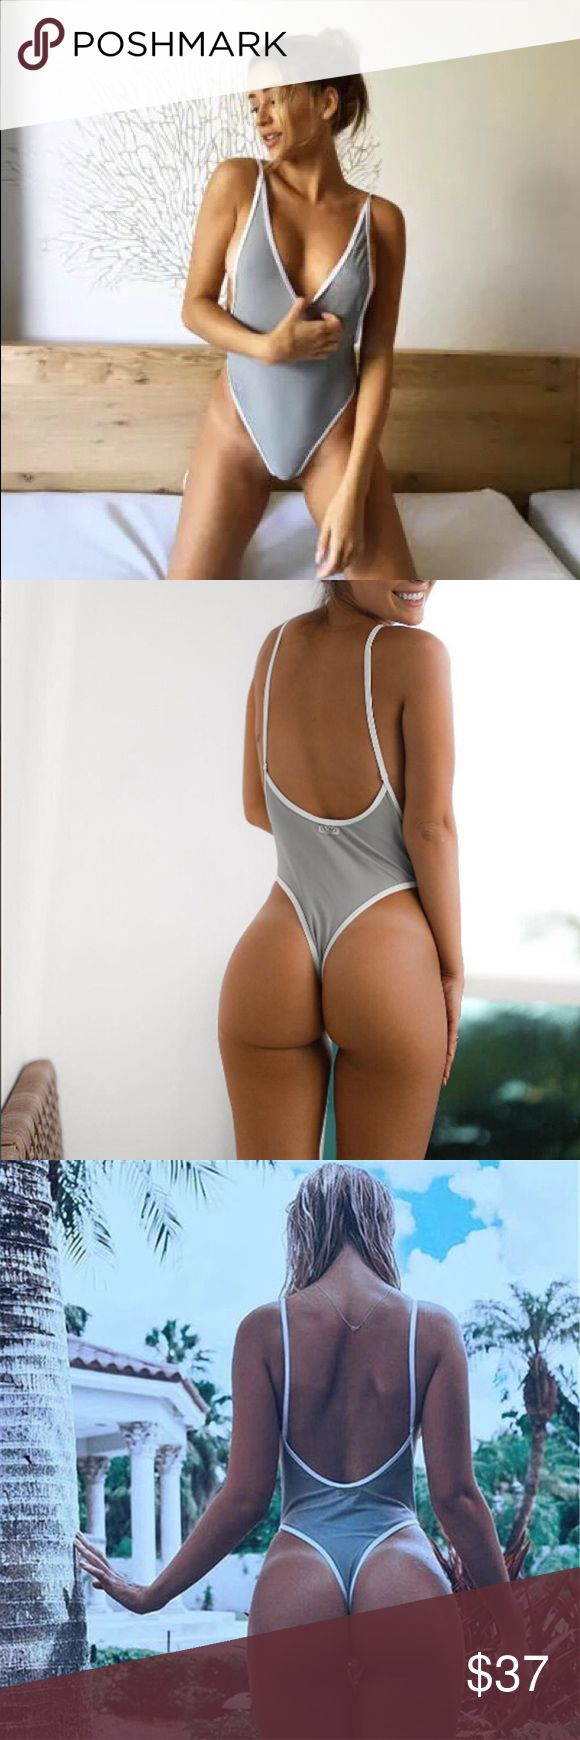 Gray and White Colorblock One Piece Measurements will be up shortly. •Unpadded & thong style• Swim One Pieces